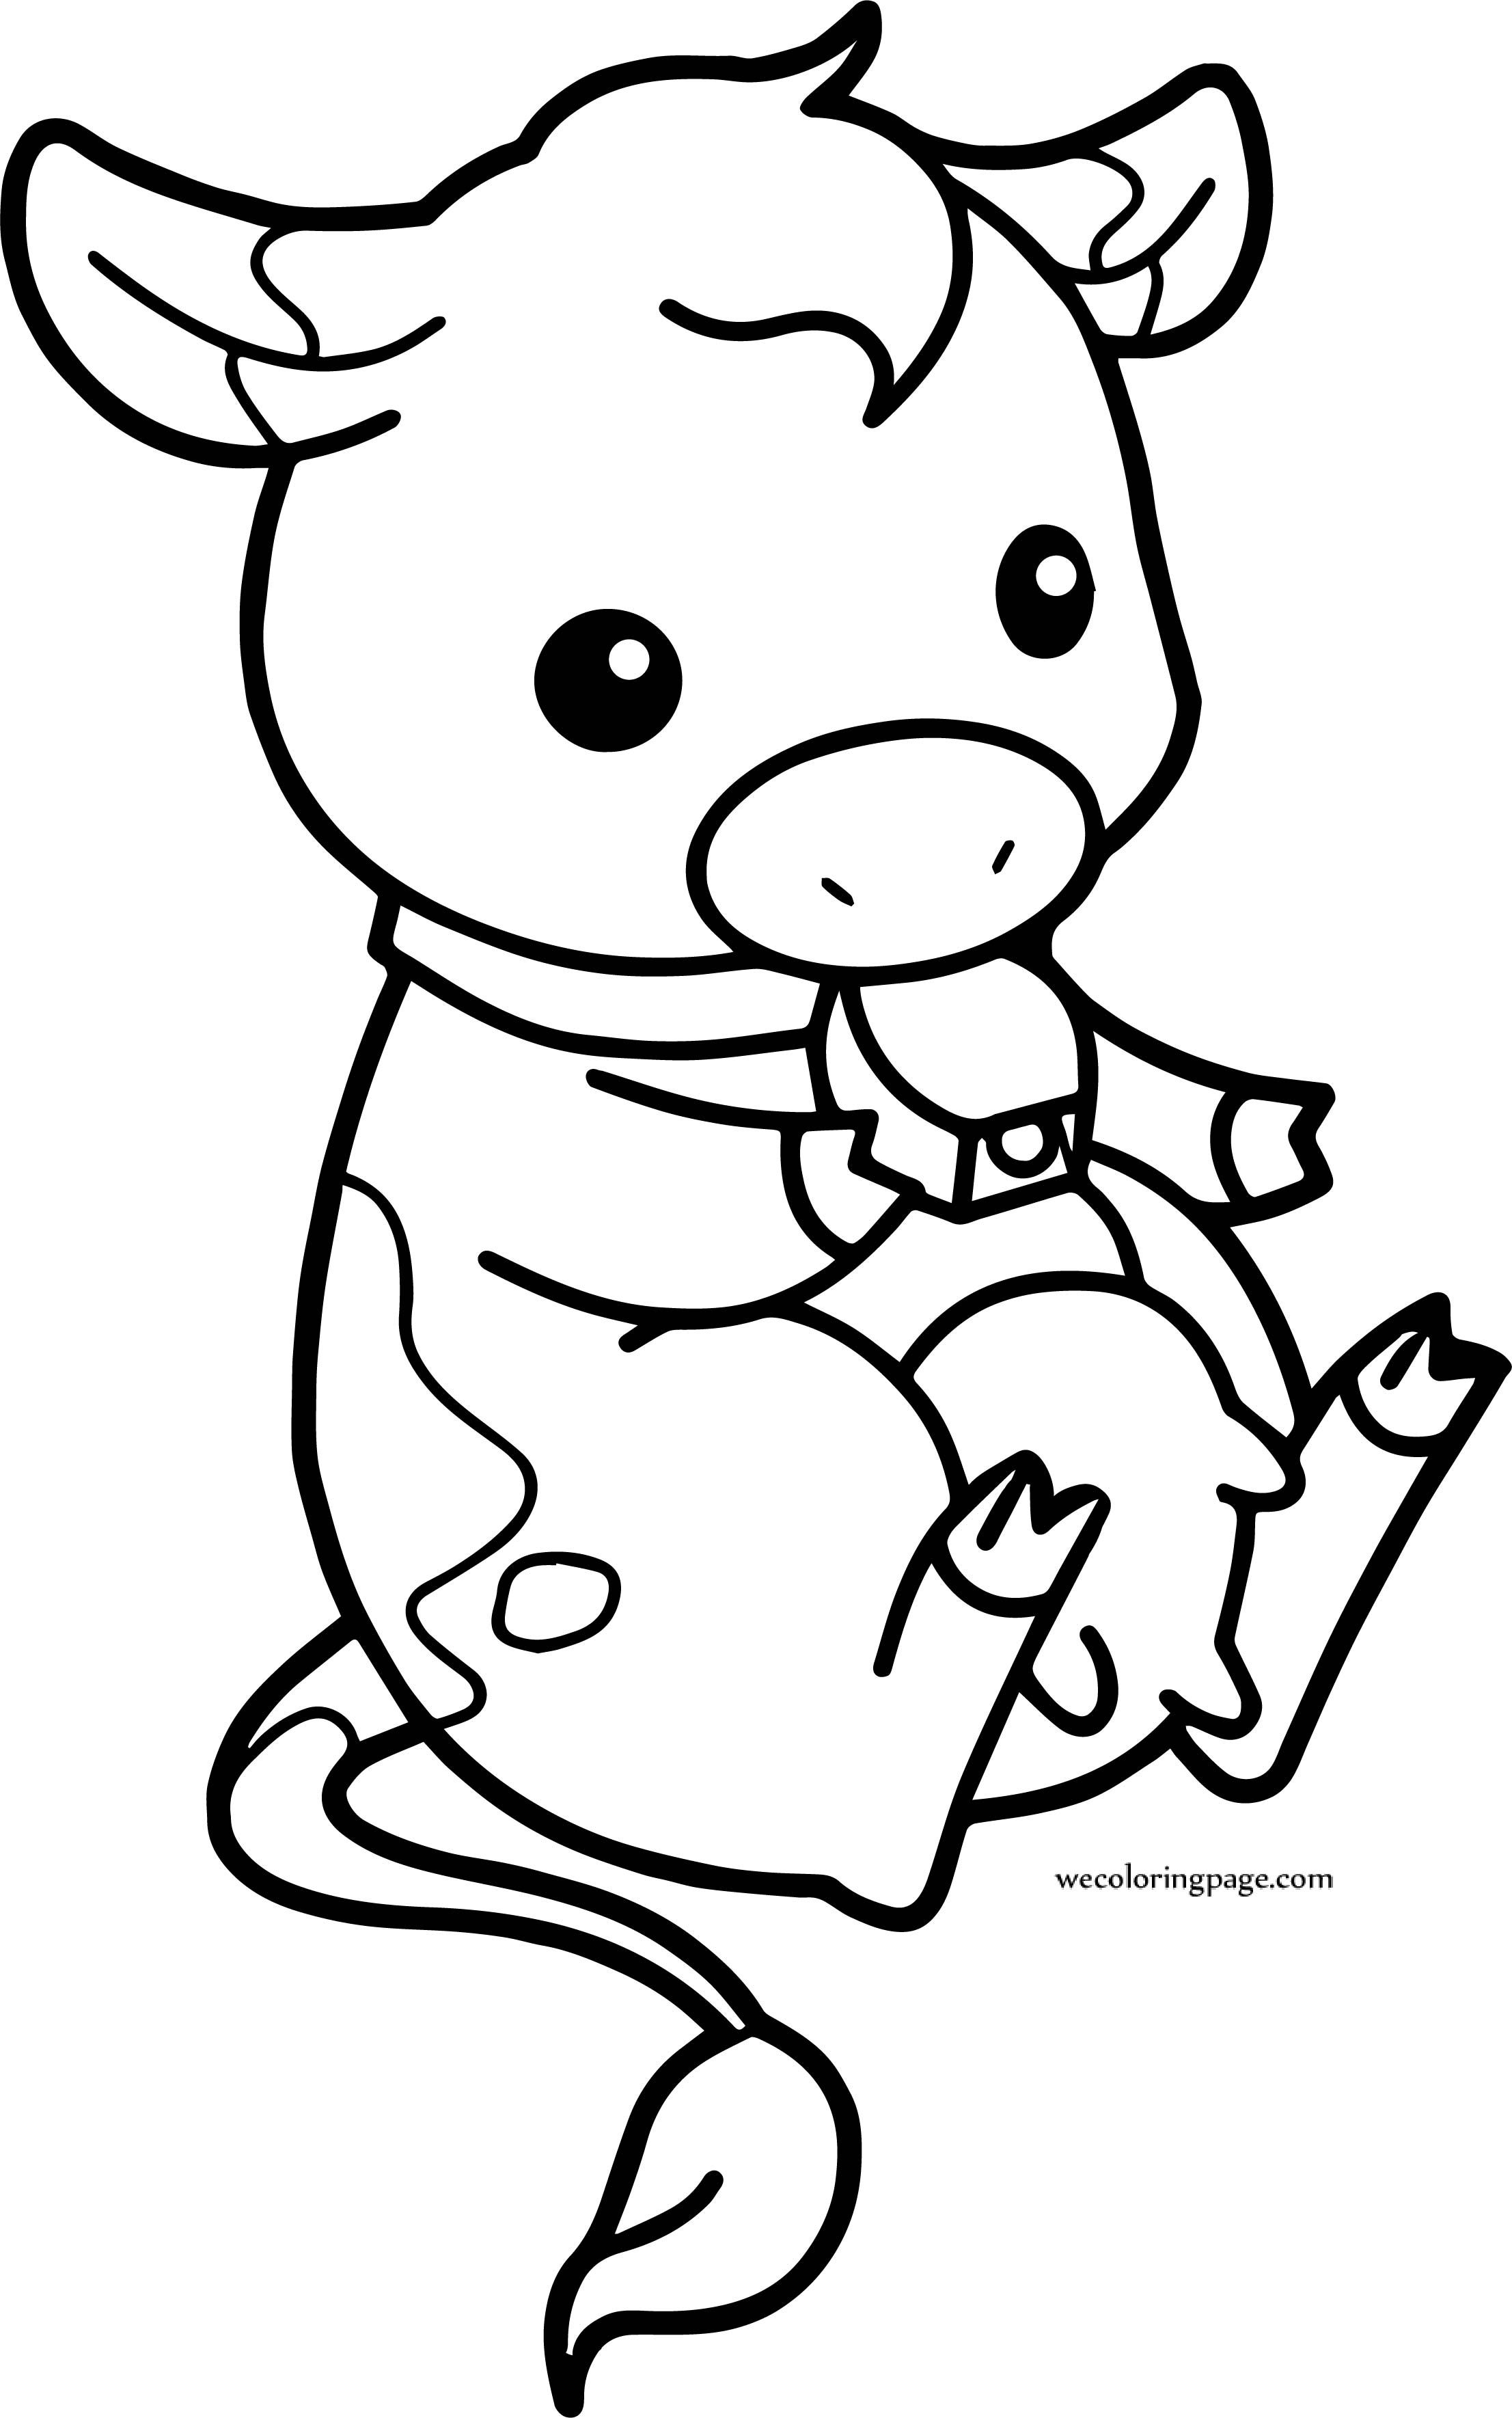 Pin By Wecoloringpage Coloring Pages On Wecoloringpage Cow Coloring Pages Coloring Pages Baby Cows